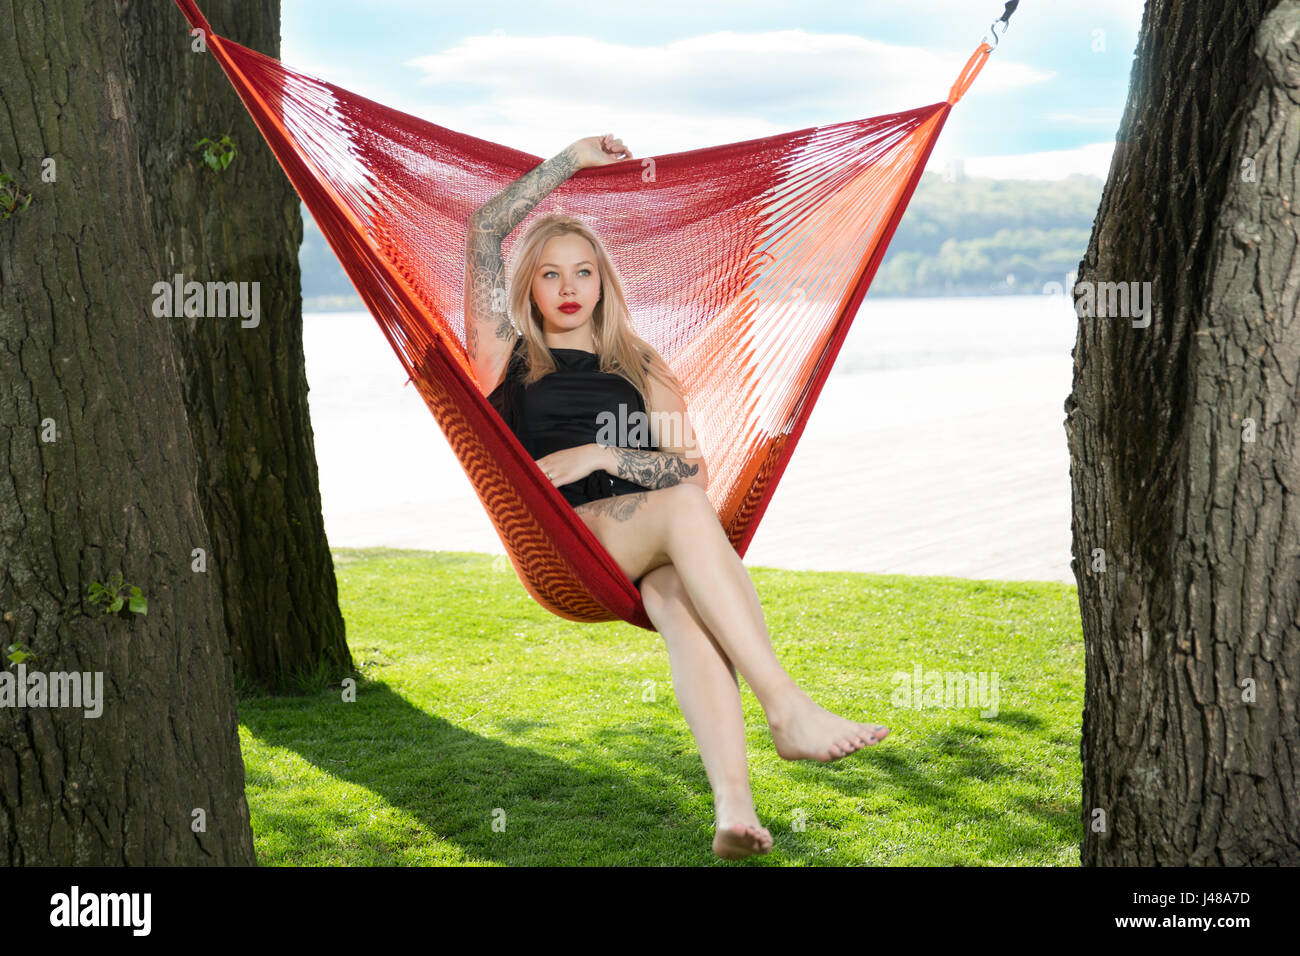 Young blonde woman resting on hammock On a background of green grass and blue sky - Stock Image